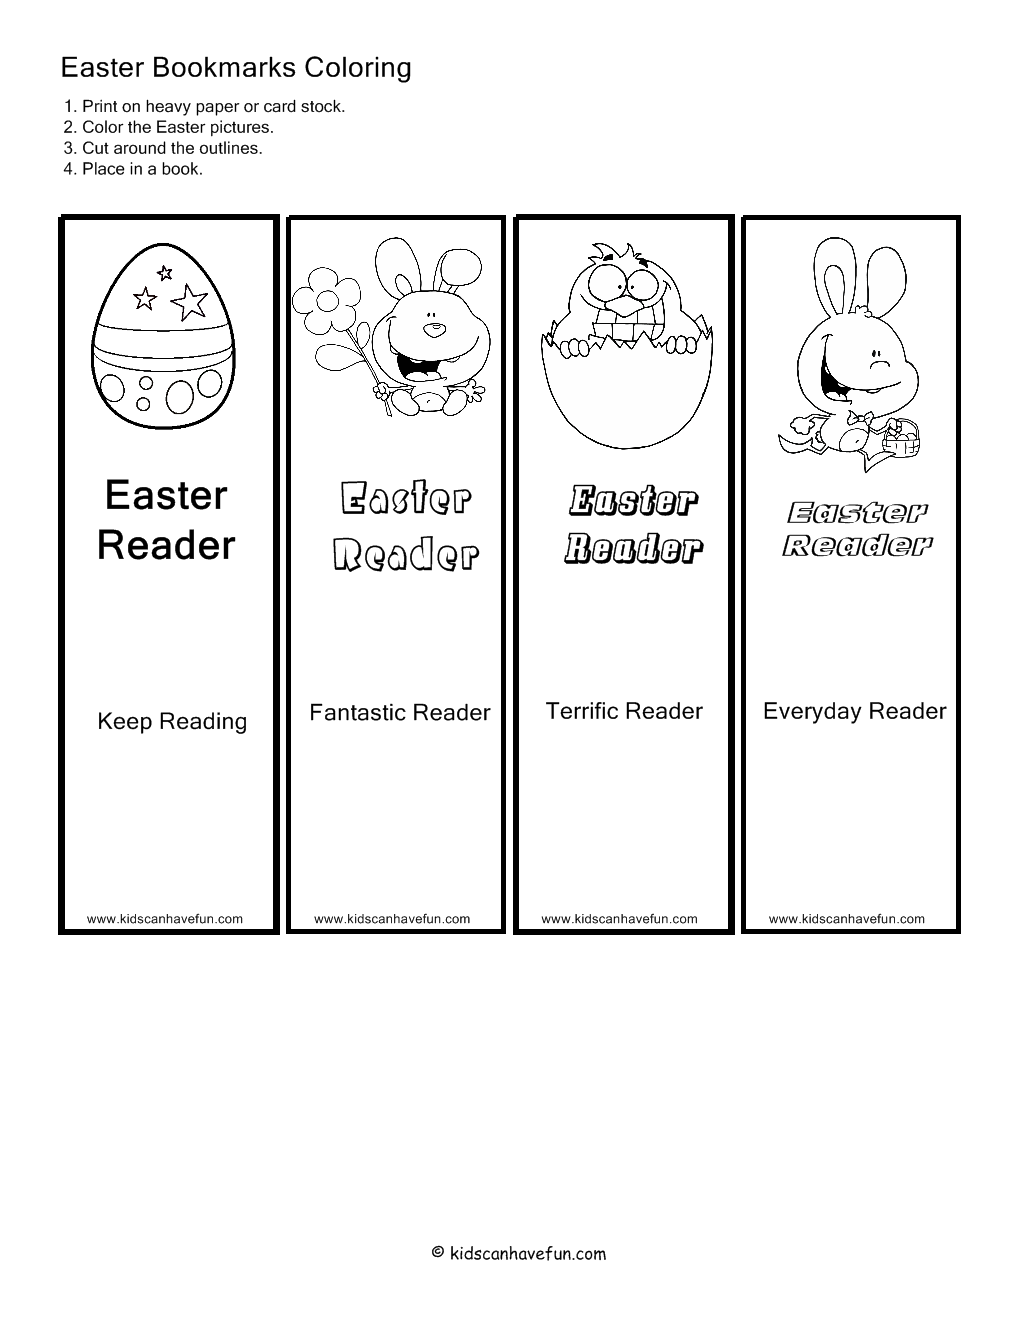 8 Images of Printable Bookmarks To Color Easter